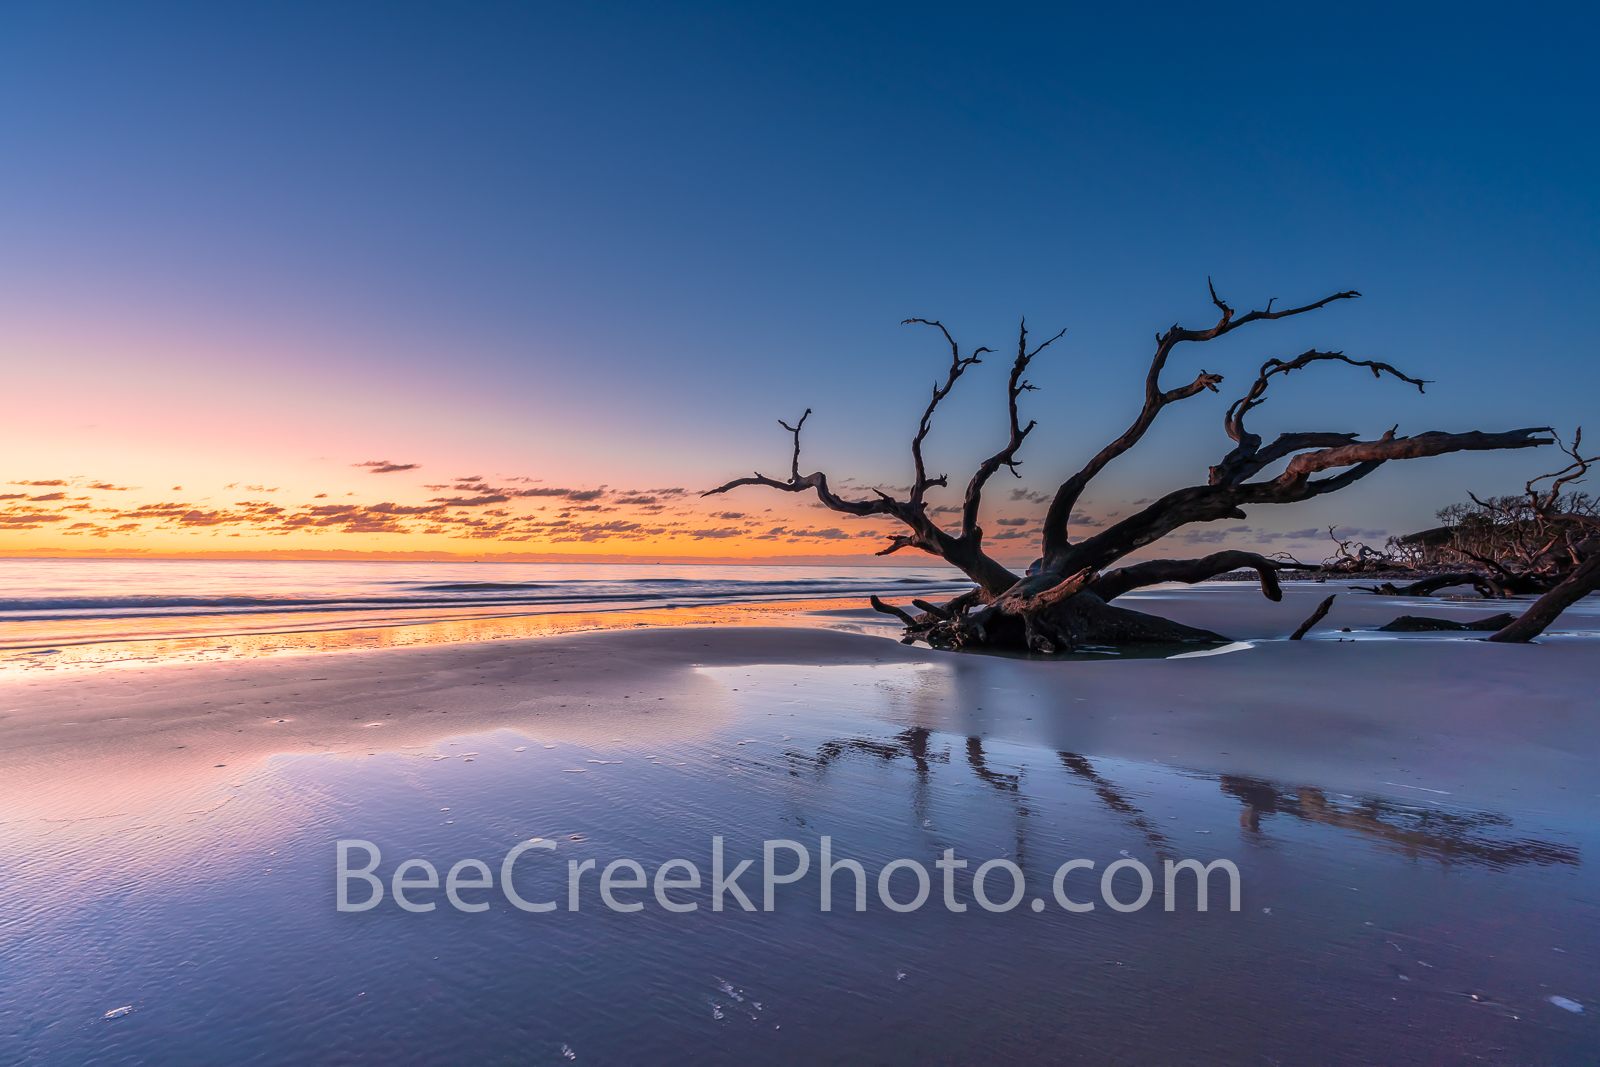 Colorful Sunrise at Driftwood Beach - Jekyll Island driftwood beach with trees in the sand at sunrise. It was a beautiful morning...